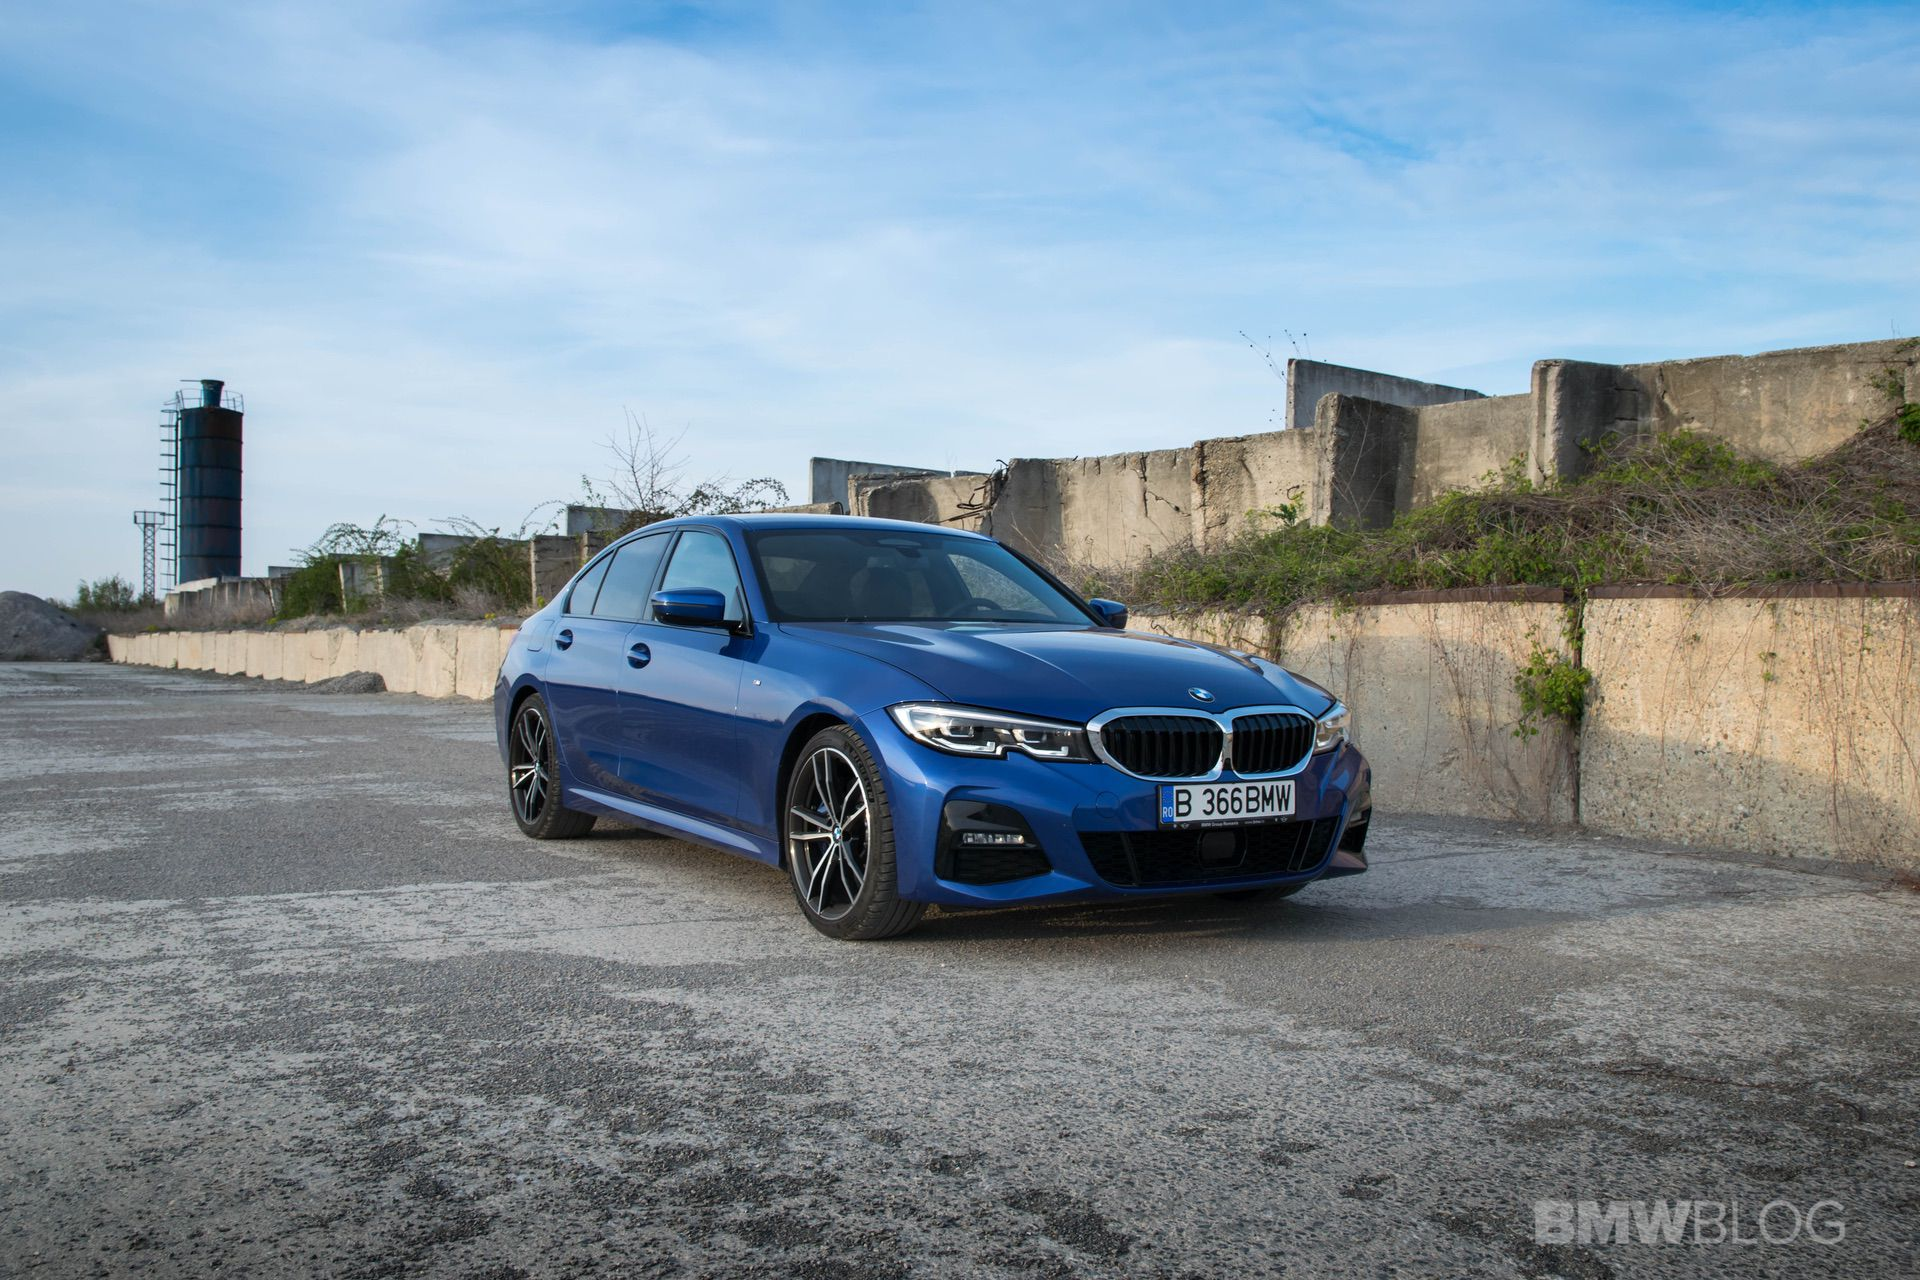 REVIEW: 2019 BMW 330i – All You Need